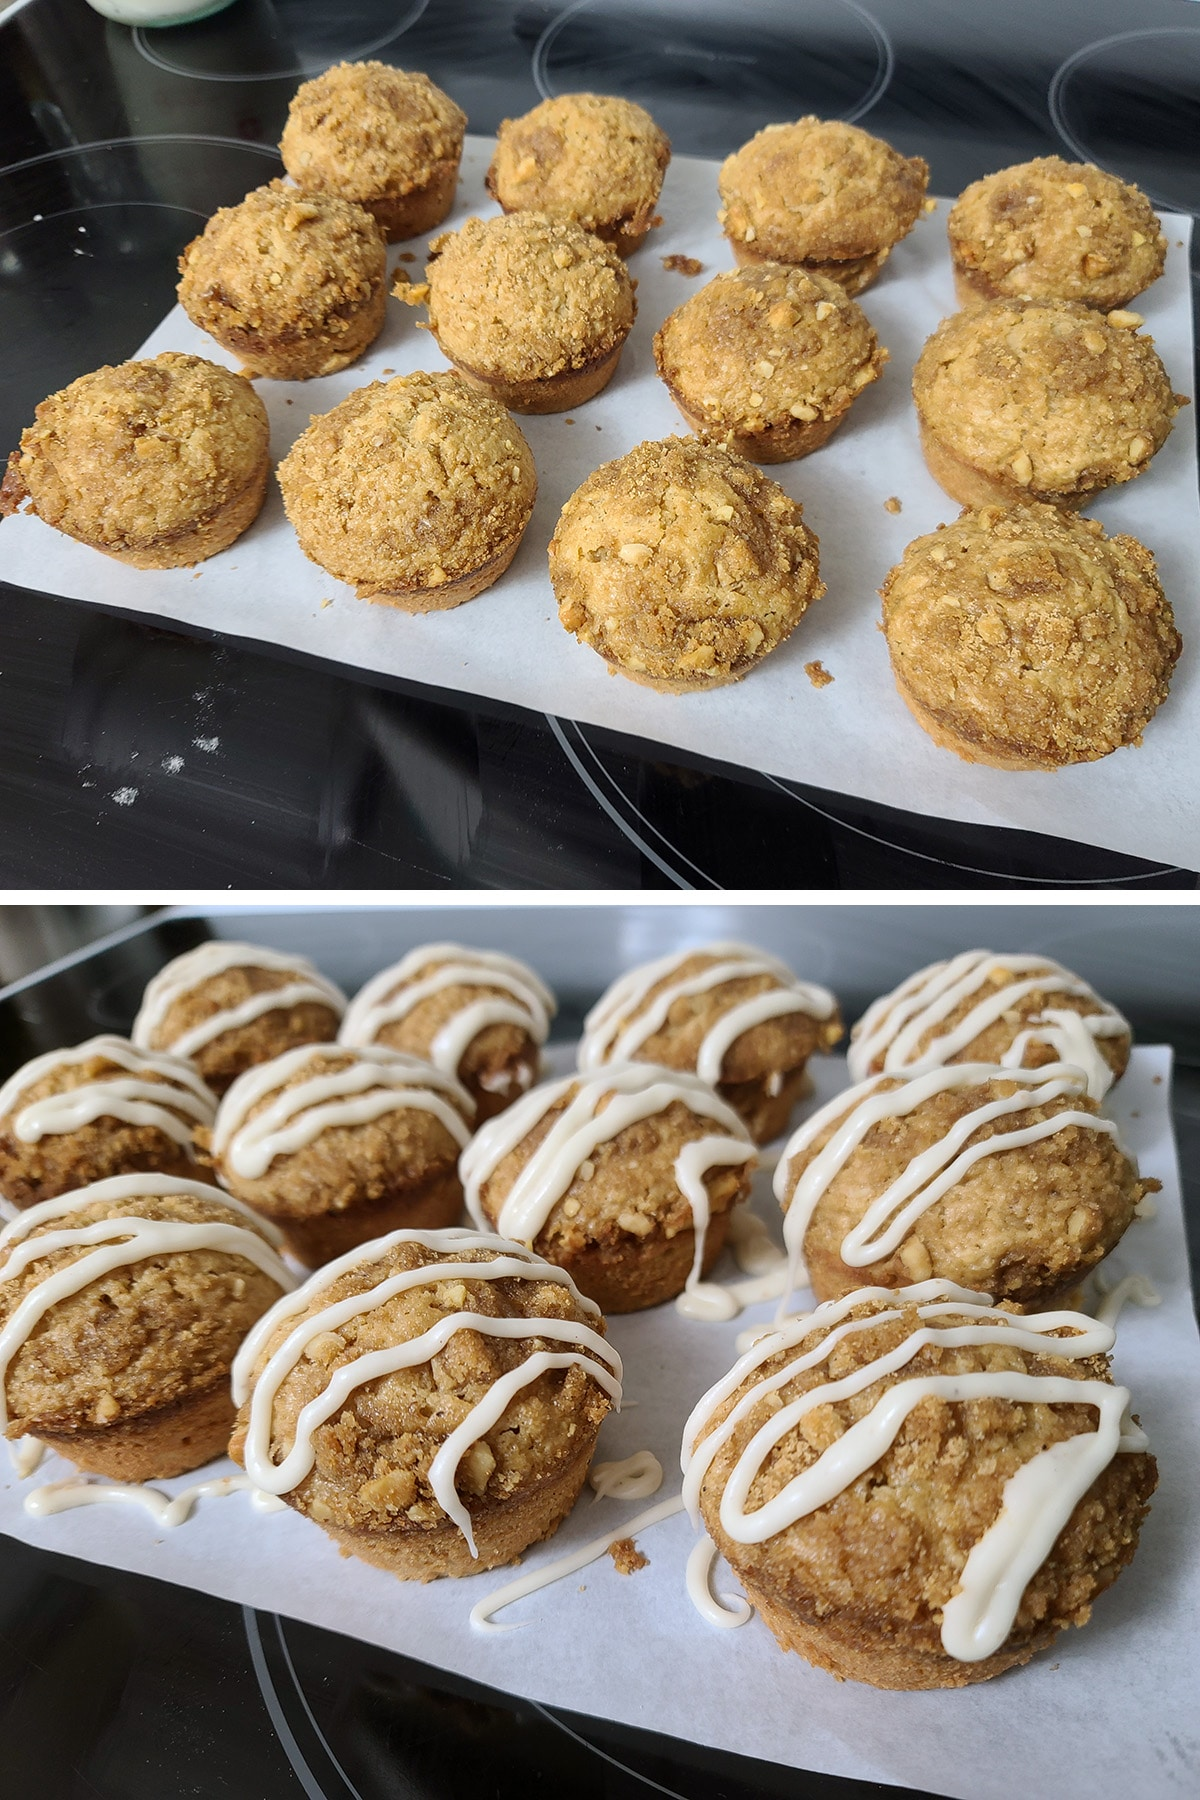 12 muffins on a sheet of parchment paper, before and after being drizzled with maple nutmeg glaze.